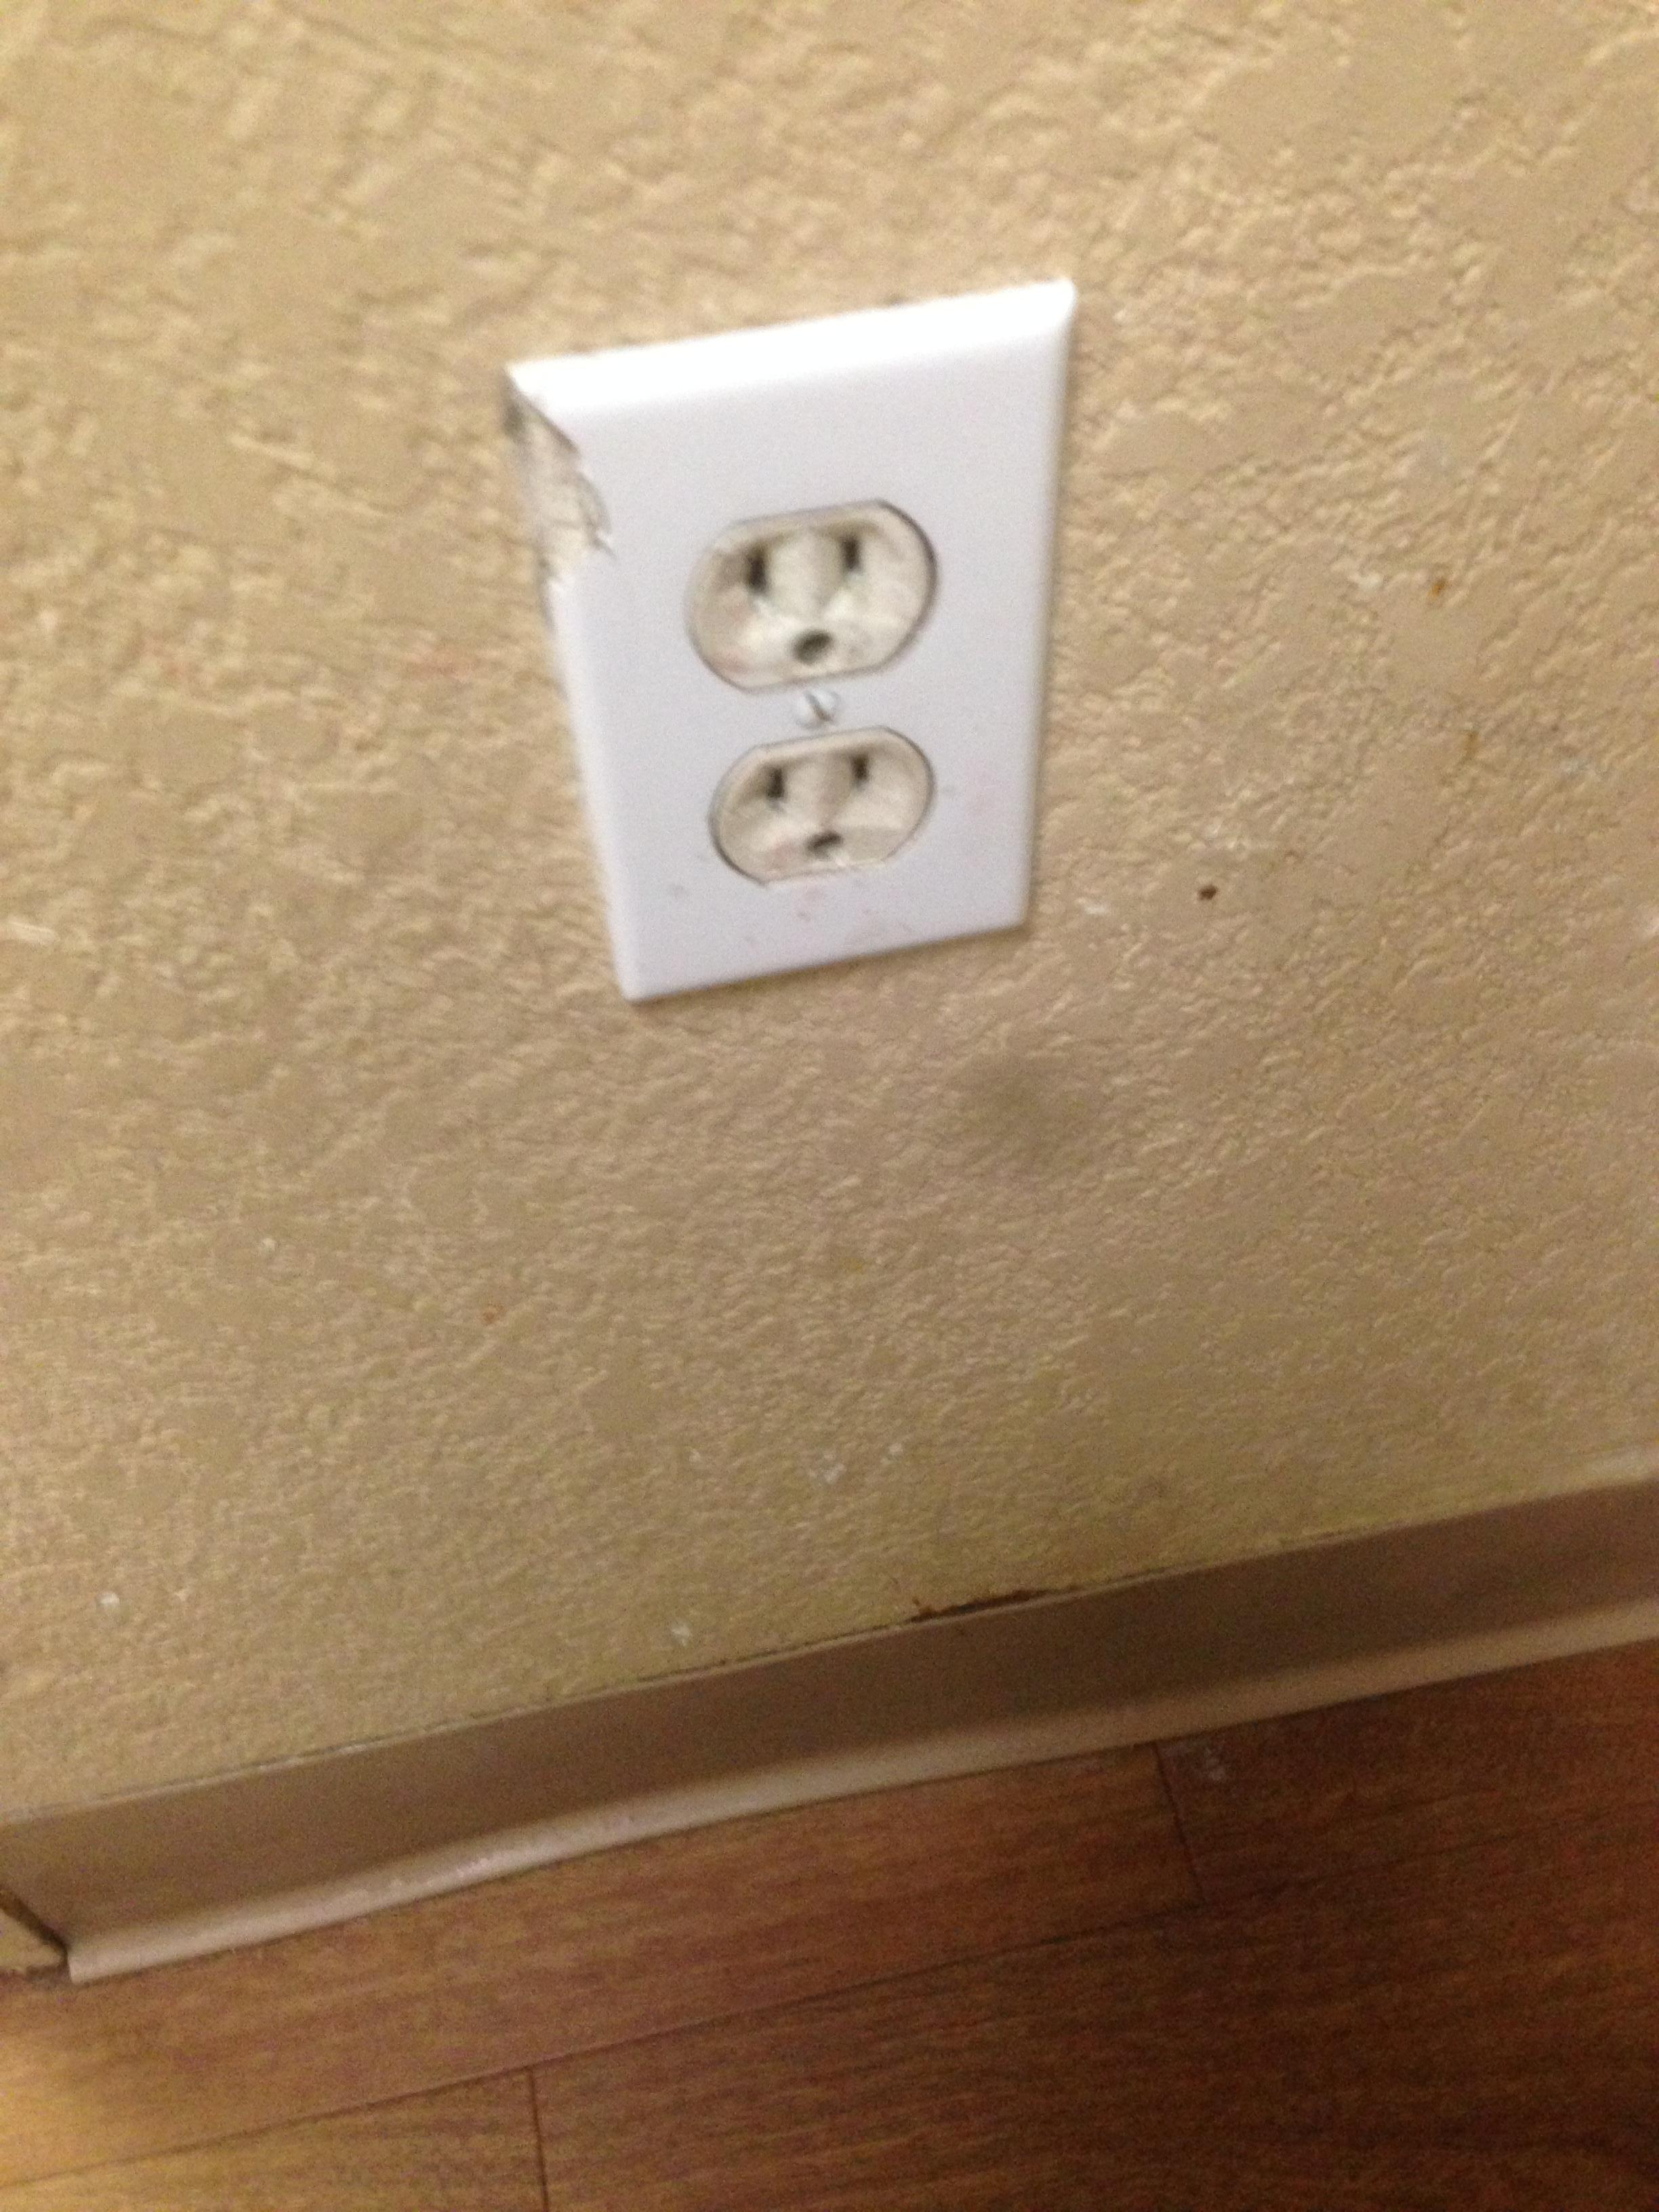 Broken and mis-matched outlet